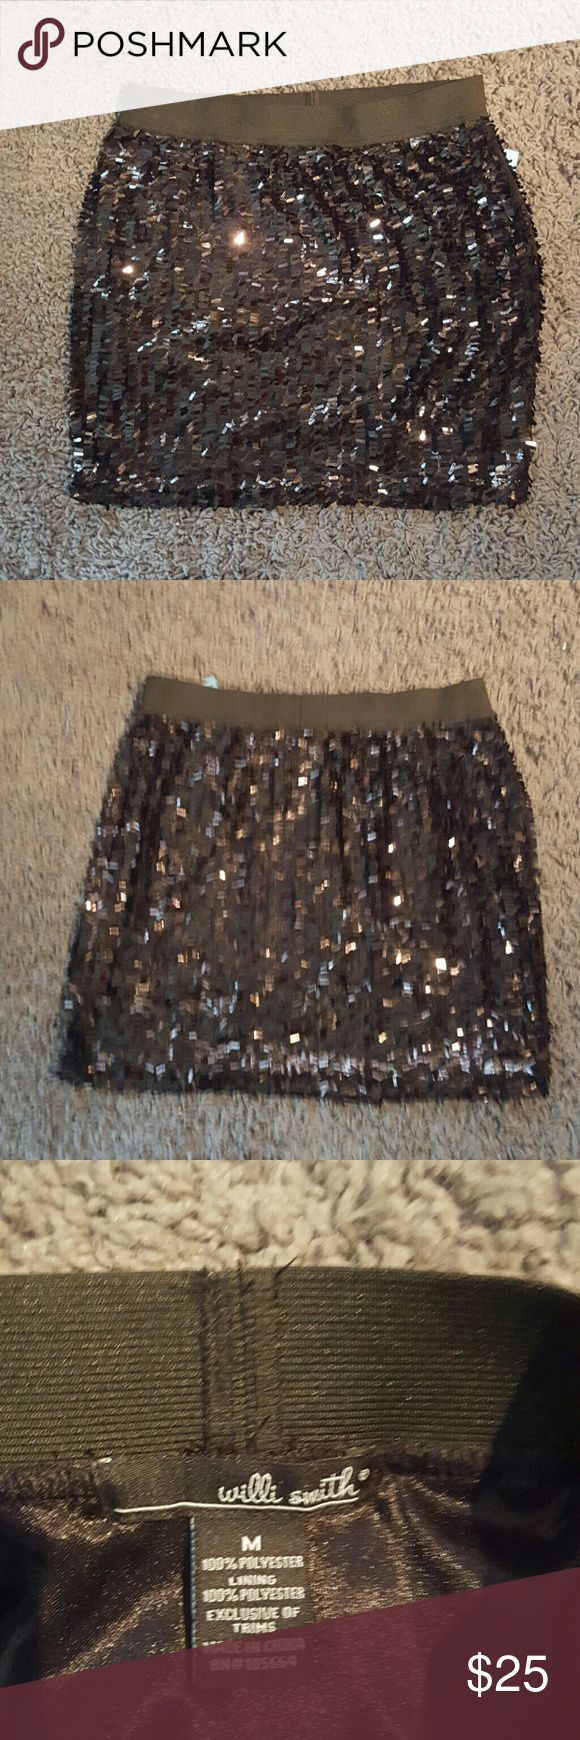 Willi Smith Sequin Mini Skirt Super cute black sequin mini skirt, great for a night out on the town or club. Willi Smith Skirts Mini